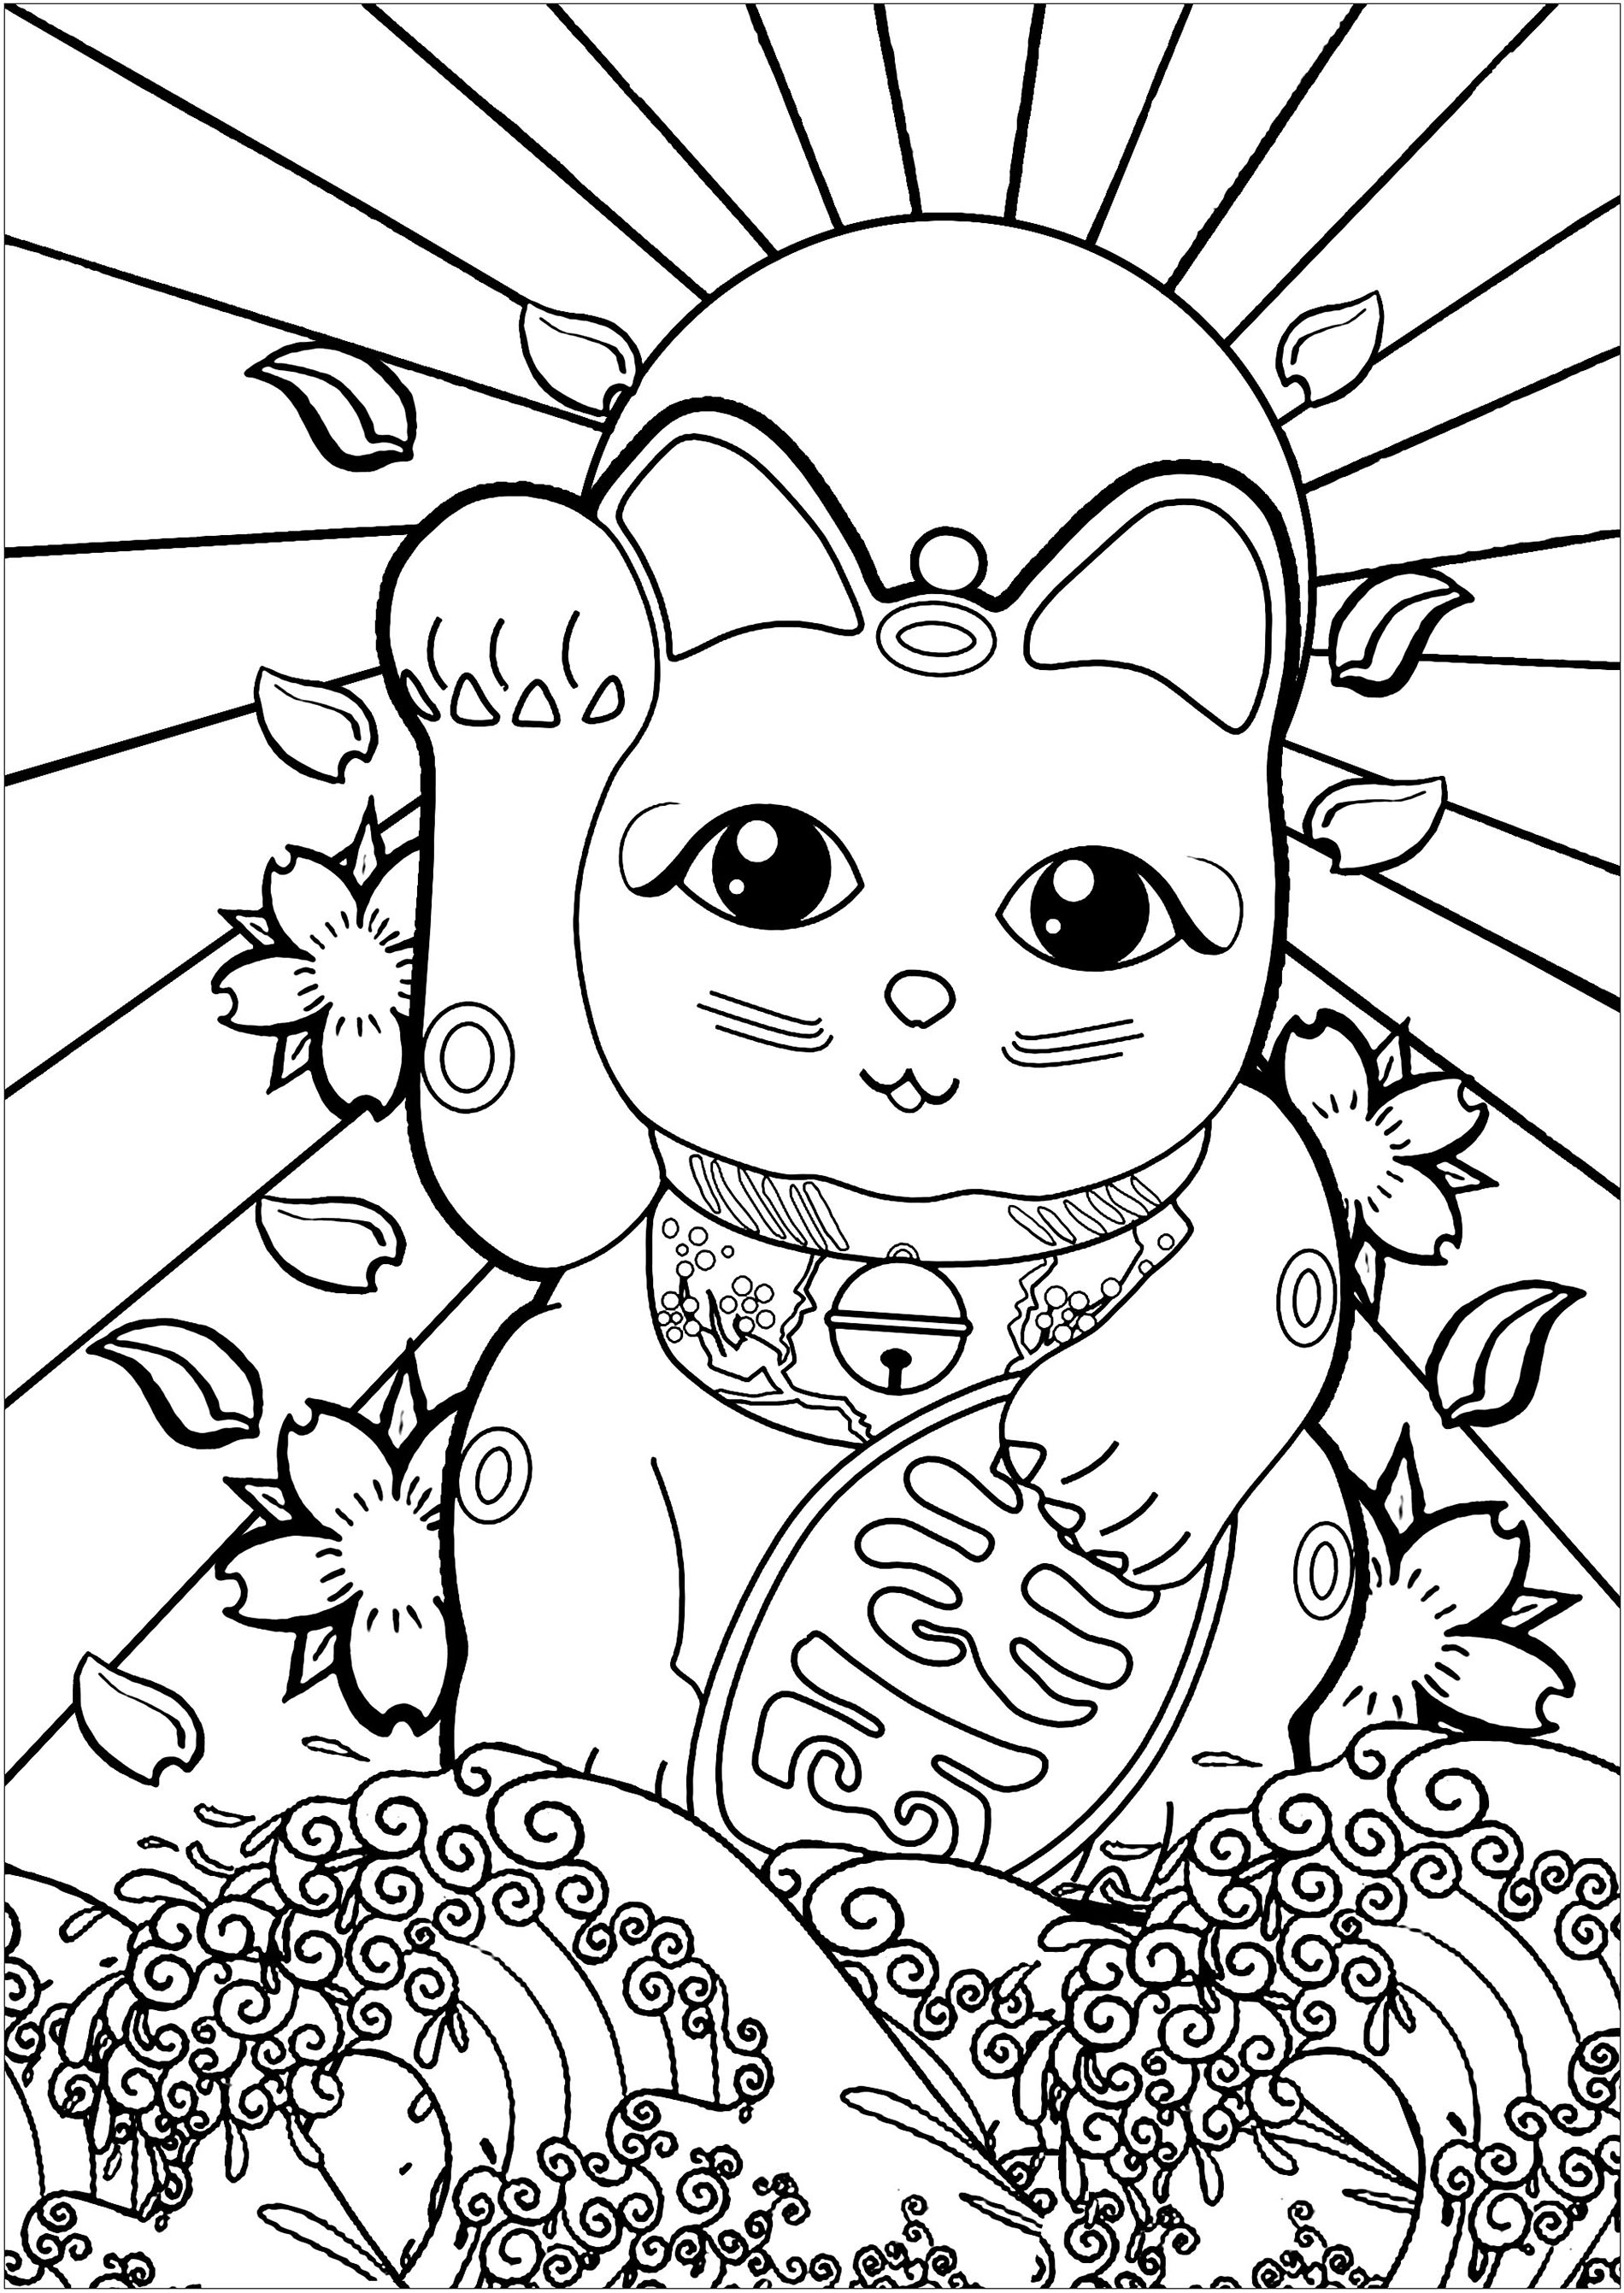 Free Maneki Neko coloring page to download